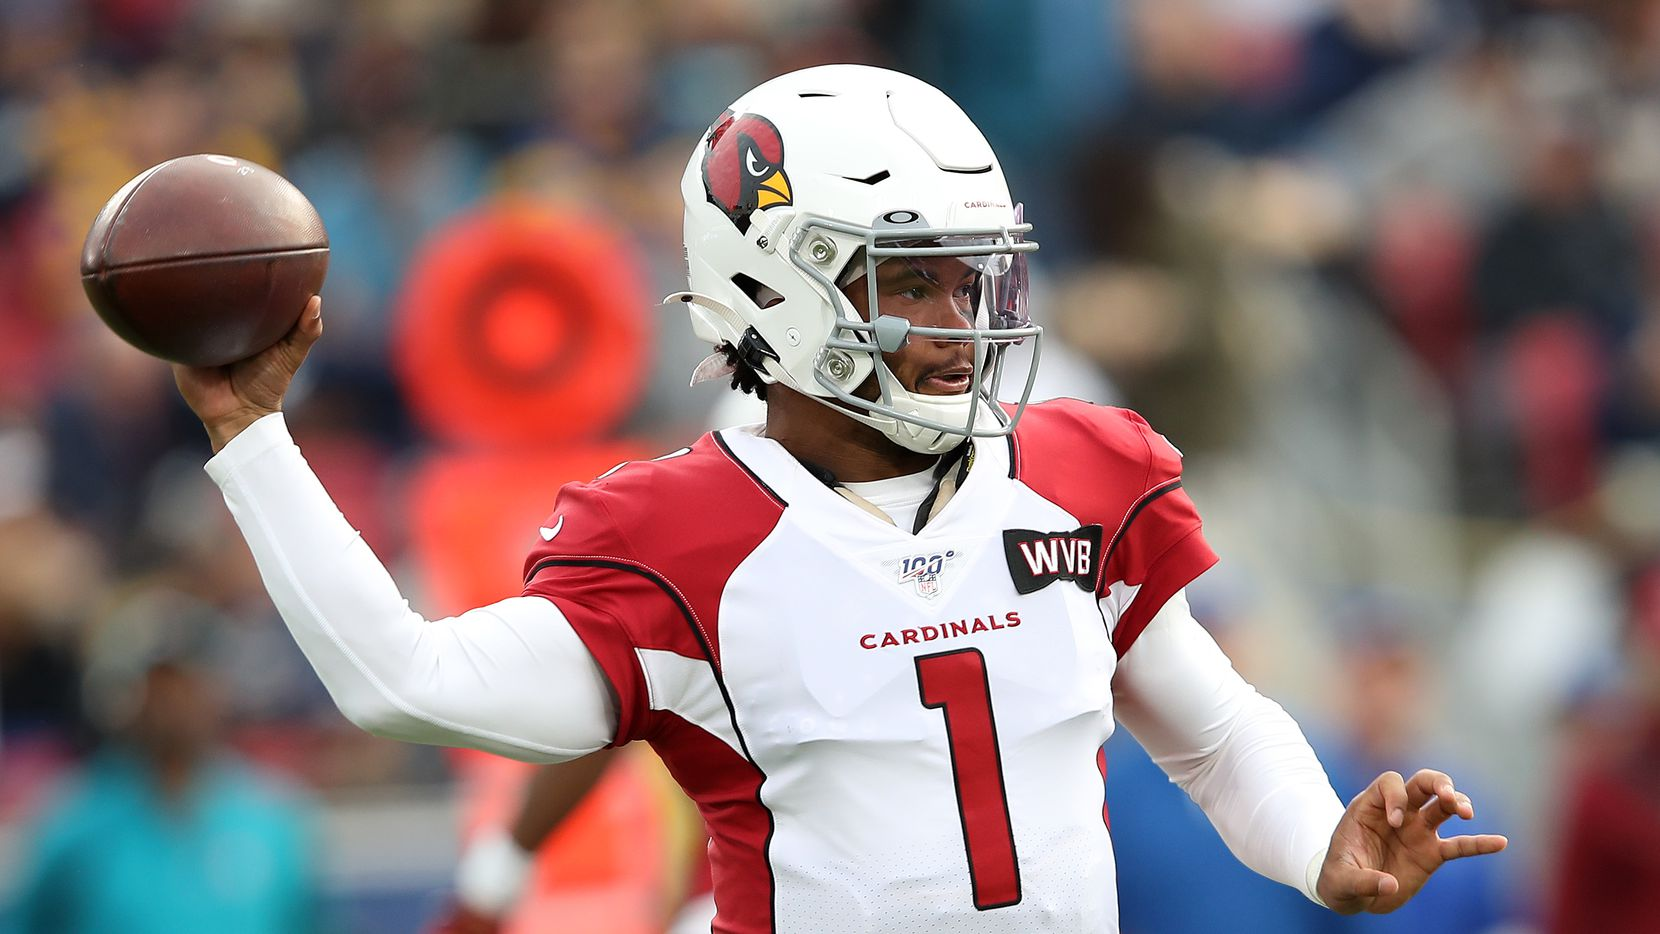 LOS ANGELES, CALIFORNIA - DECEMBER 29: Kyler Murray #1 of the Arizona Cardinals passes the ball during the second half of a game against the Los Angeles Rams at Los Angeles Memorial Coliseum on December 29, 2019 in Los Angeles, California.